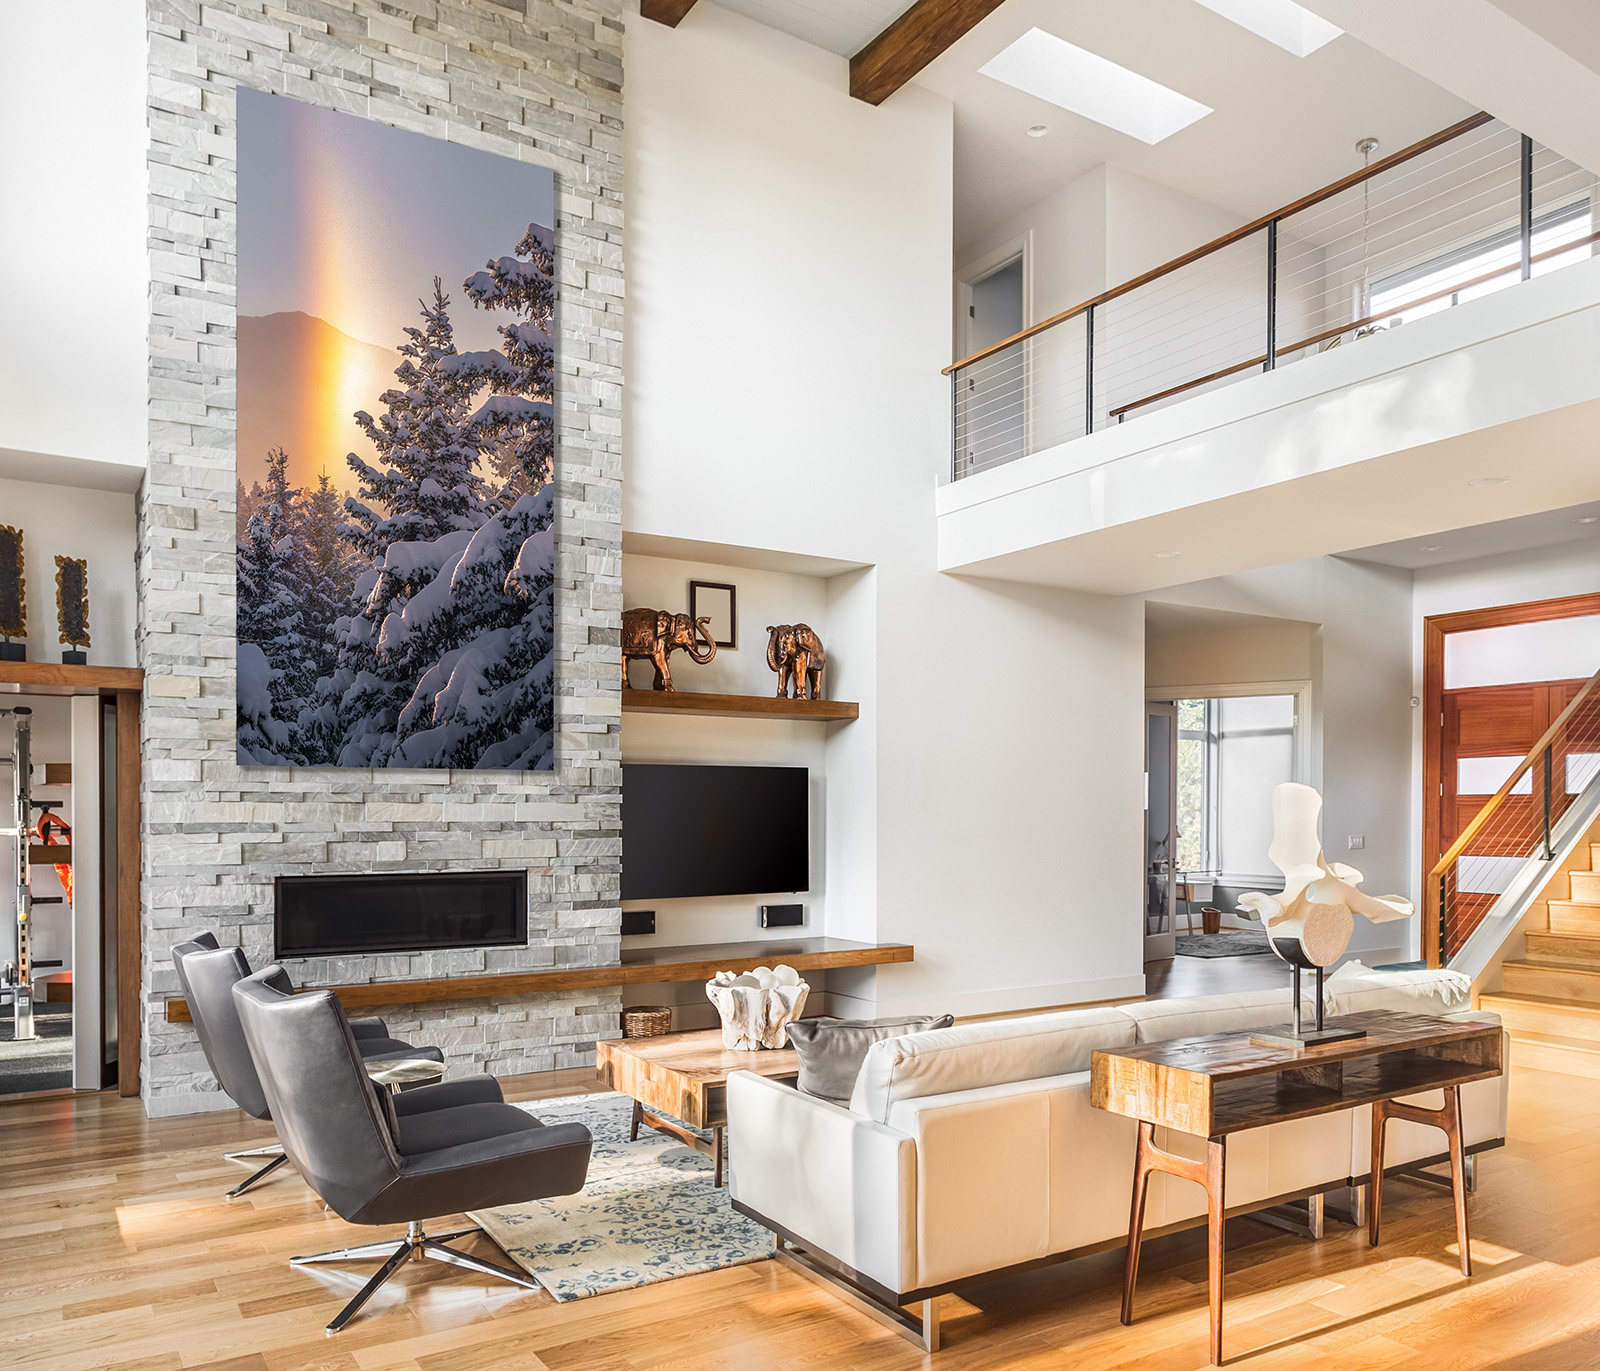 Big, Clean, Estate, Fireplace, Floor, Home, House, Interior, Living Room, Luxurious, Luxury, Modern, New, Room, Rug, Television...